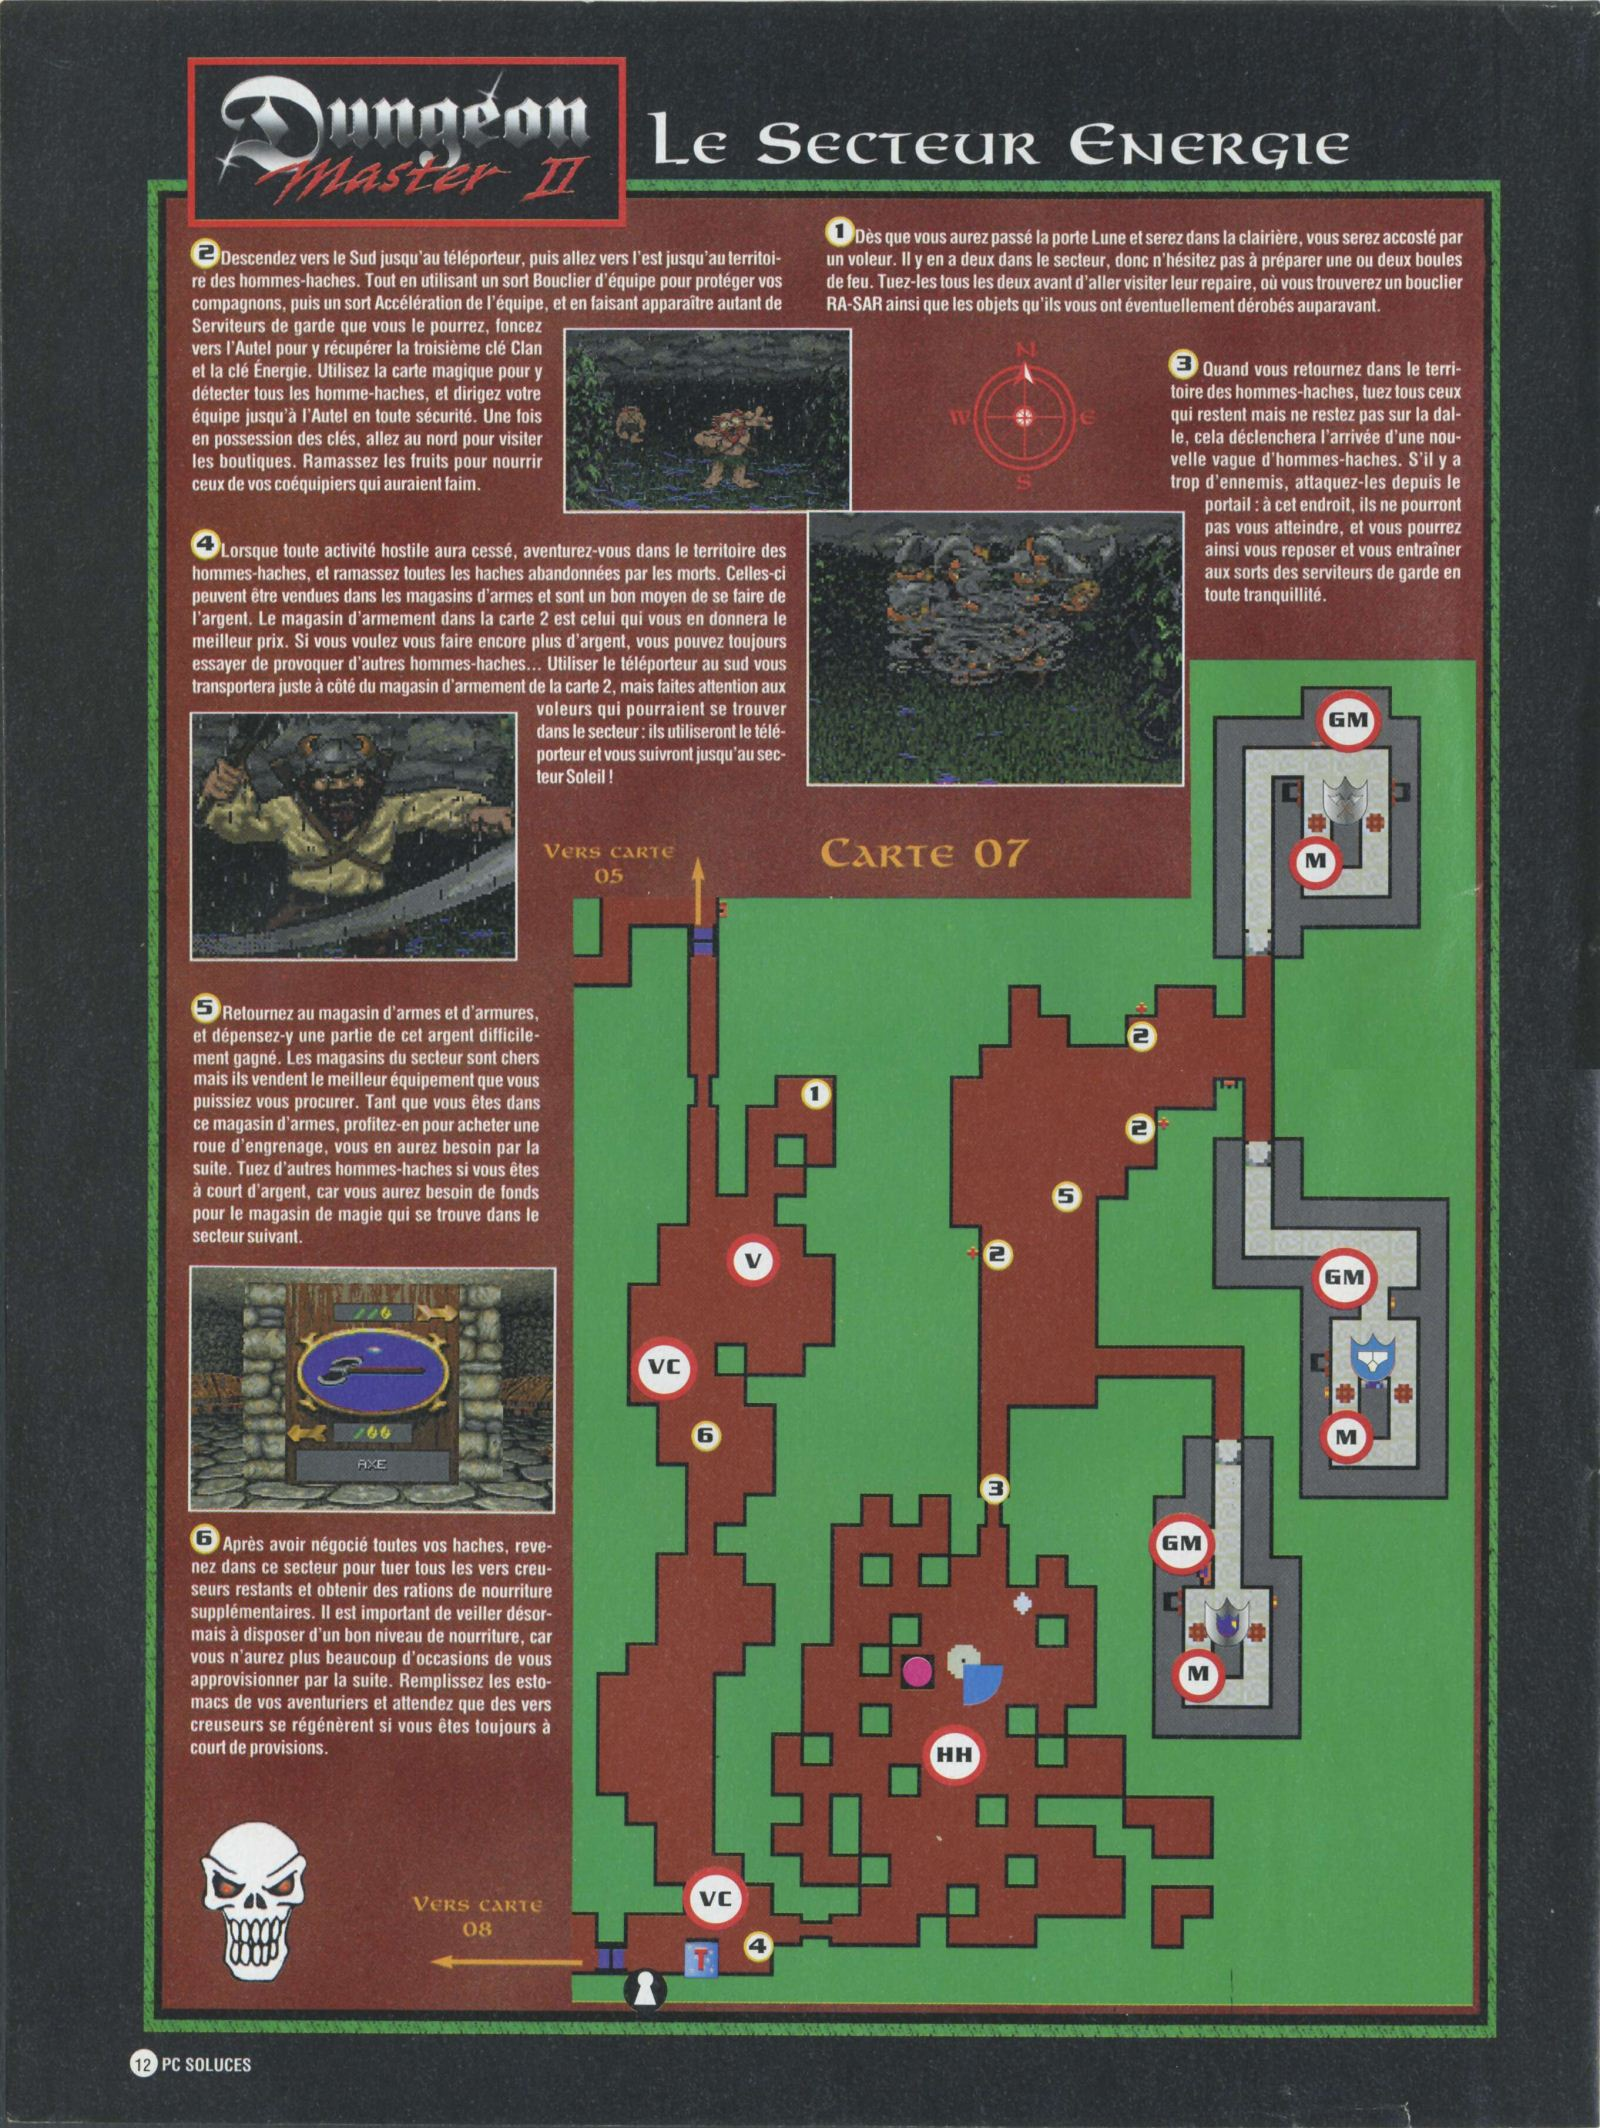 Dungeon Master II solution published in French magazine &amp;#039;PC Soluces&amp;#039;, Issue#1, February-March 1996, Page12